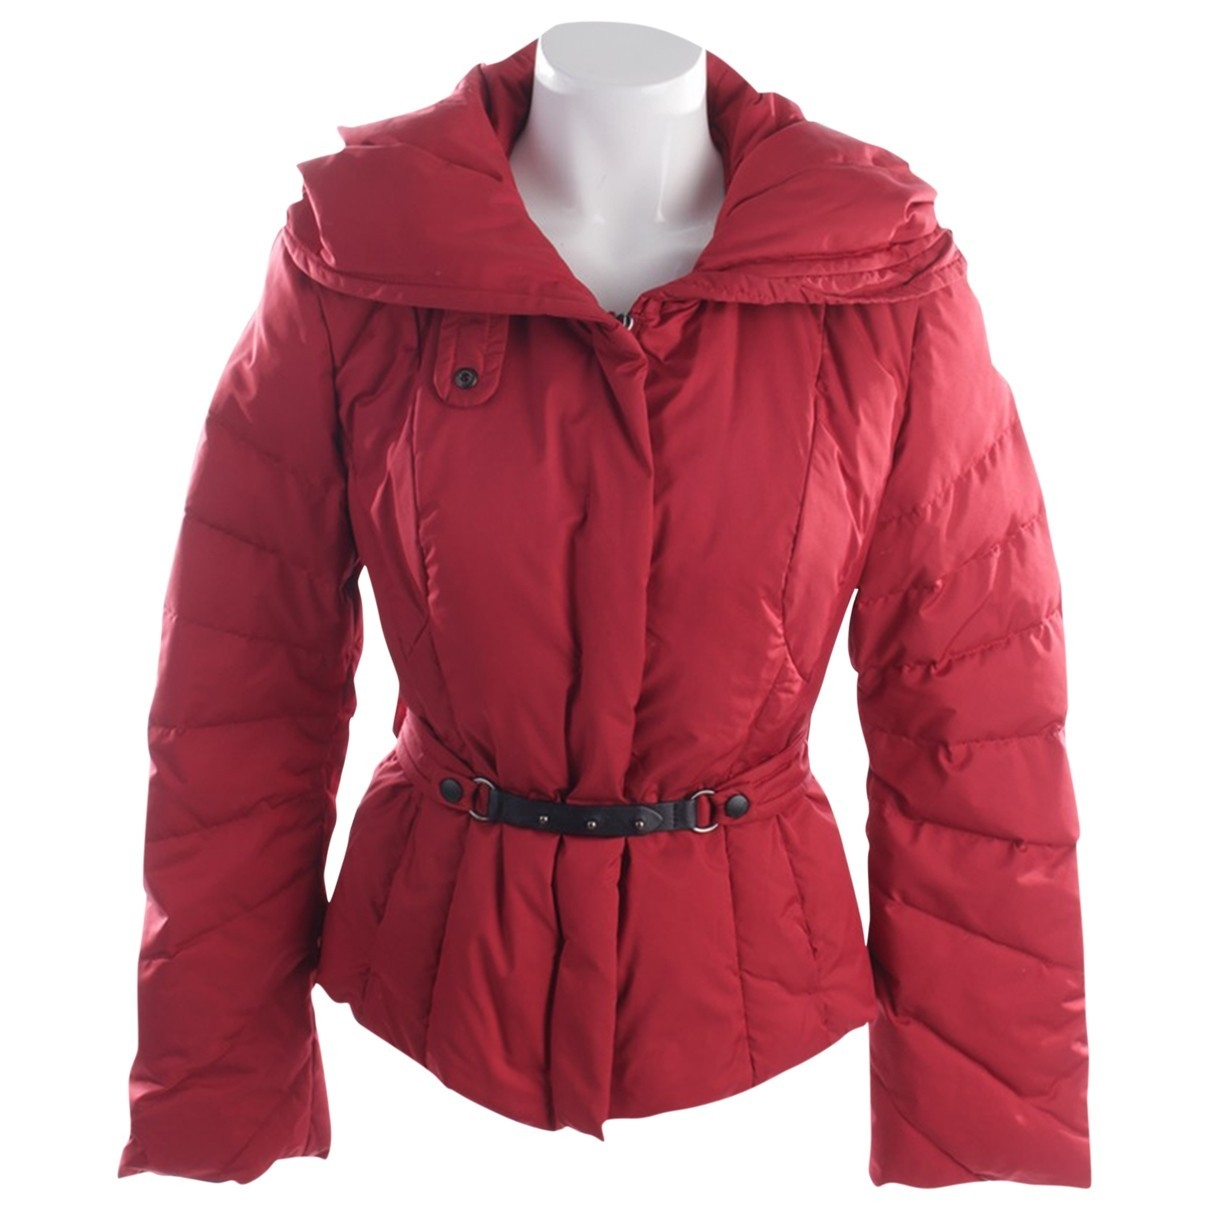 Marc Cain \N Red jacket for Women 36 FR